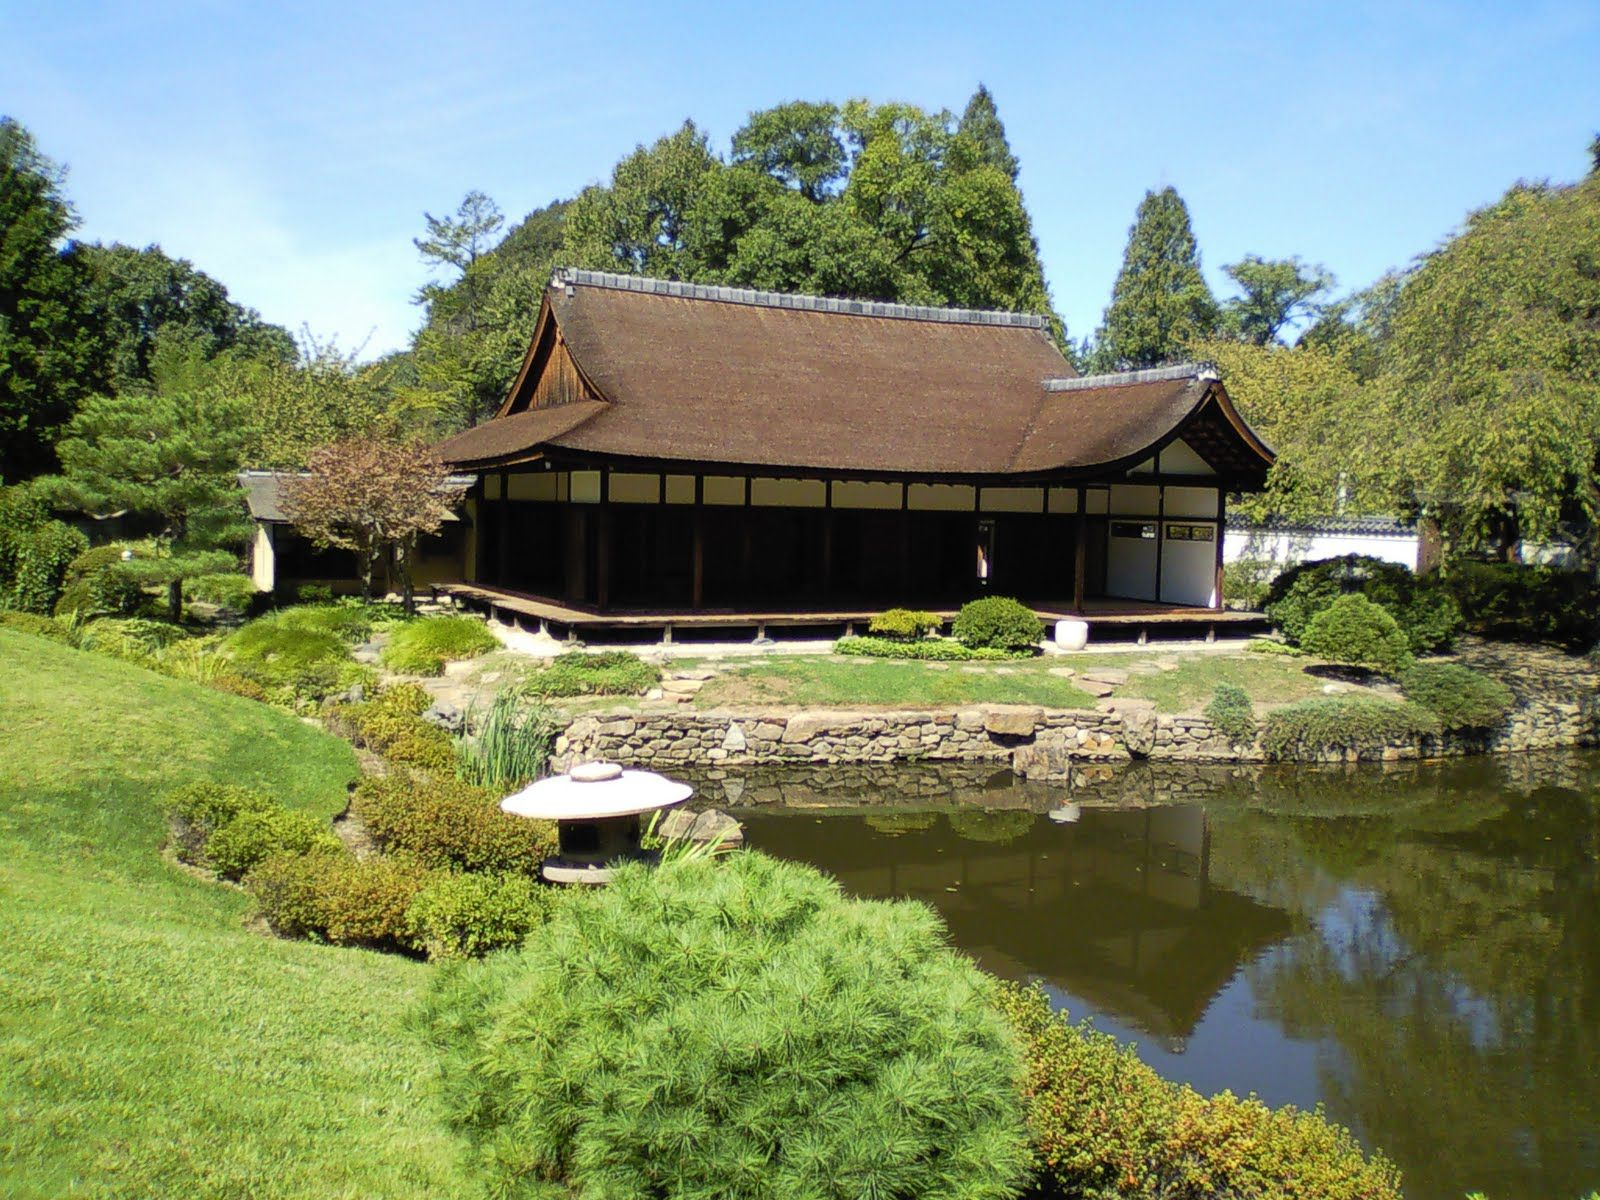 Traditional Japanese House Exterior Beach Home Decorating Japanese House Traditional Japanese House House Architecture Design,Hsn Jewelry Designers